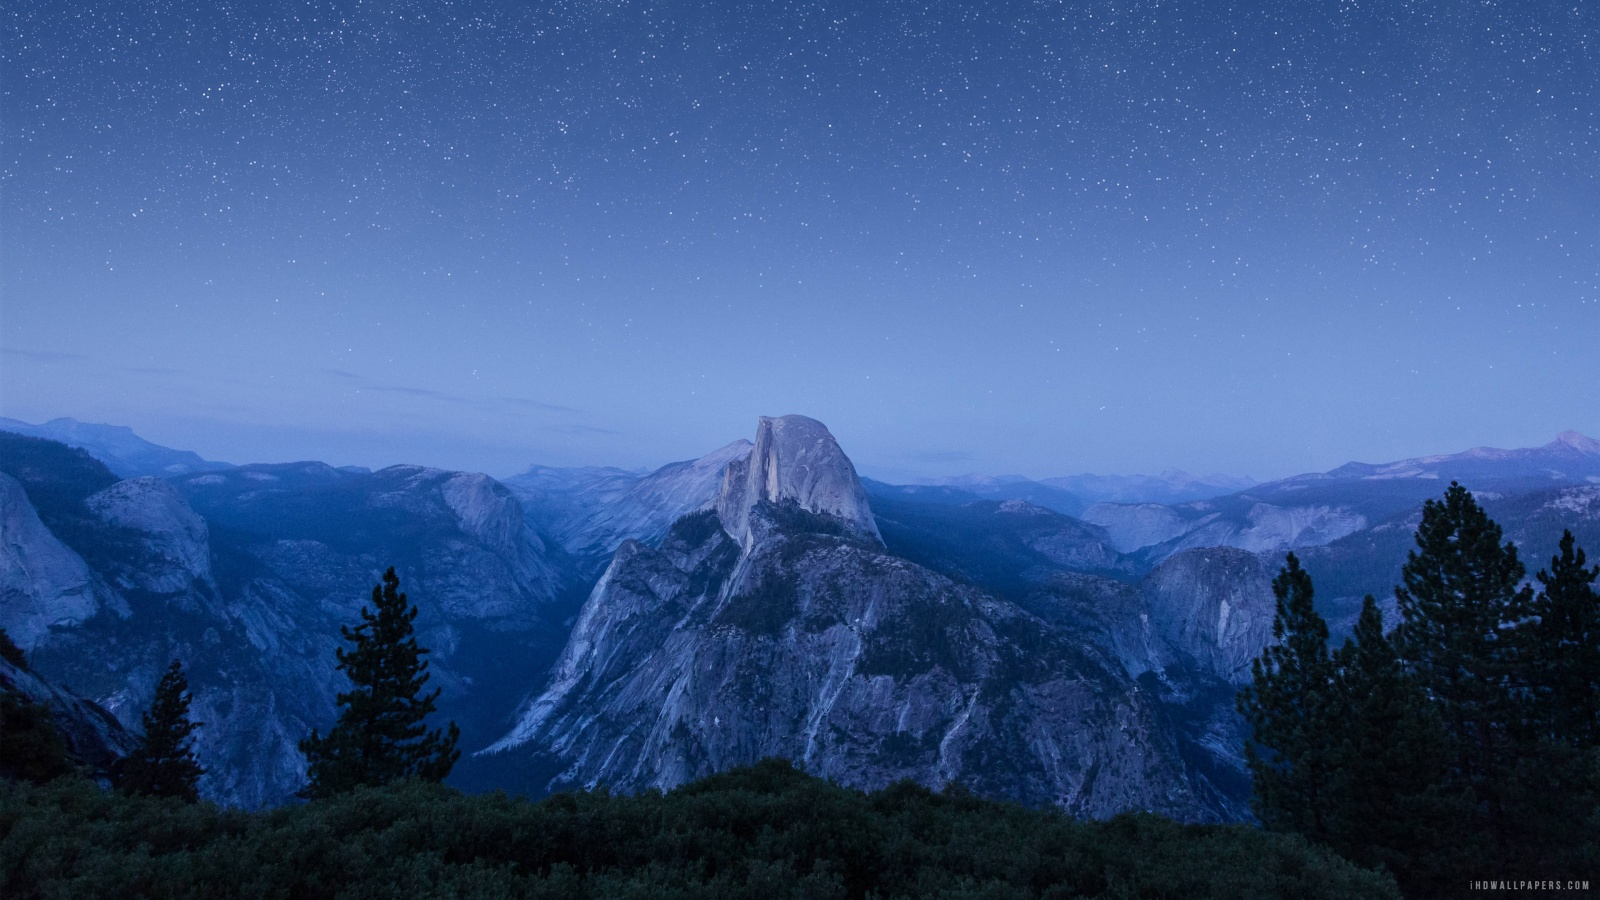 Apple OS X El Capitan HD Wallpaper   iHD Wallpapers 1600x900